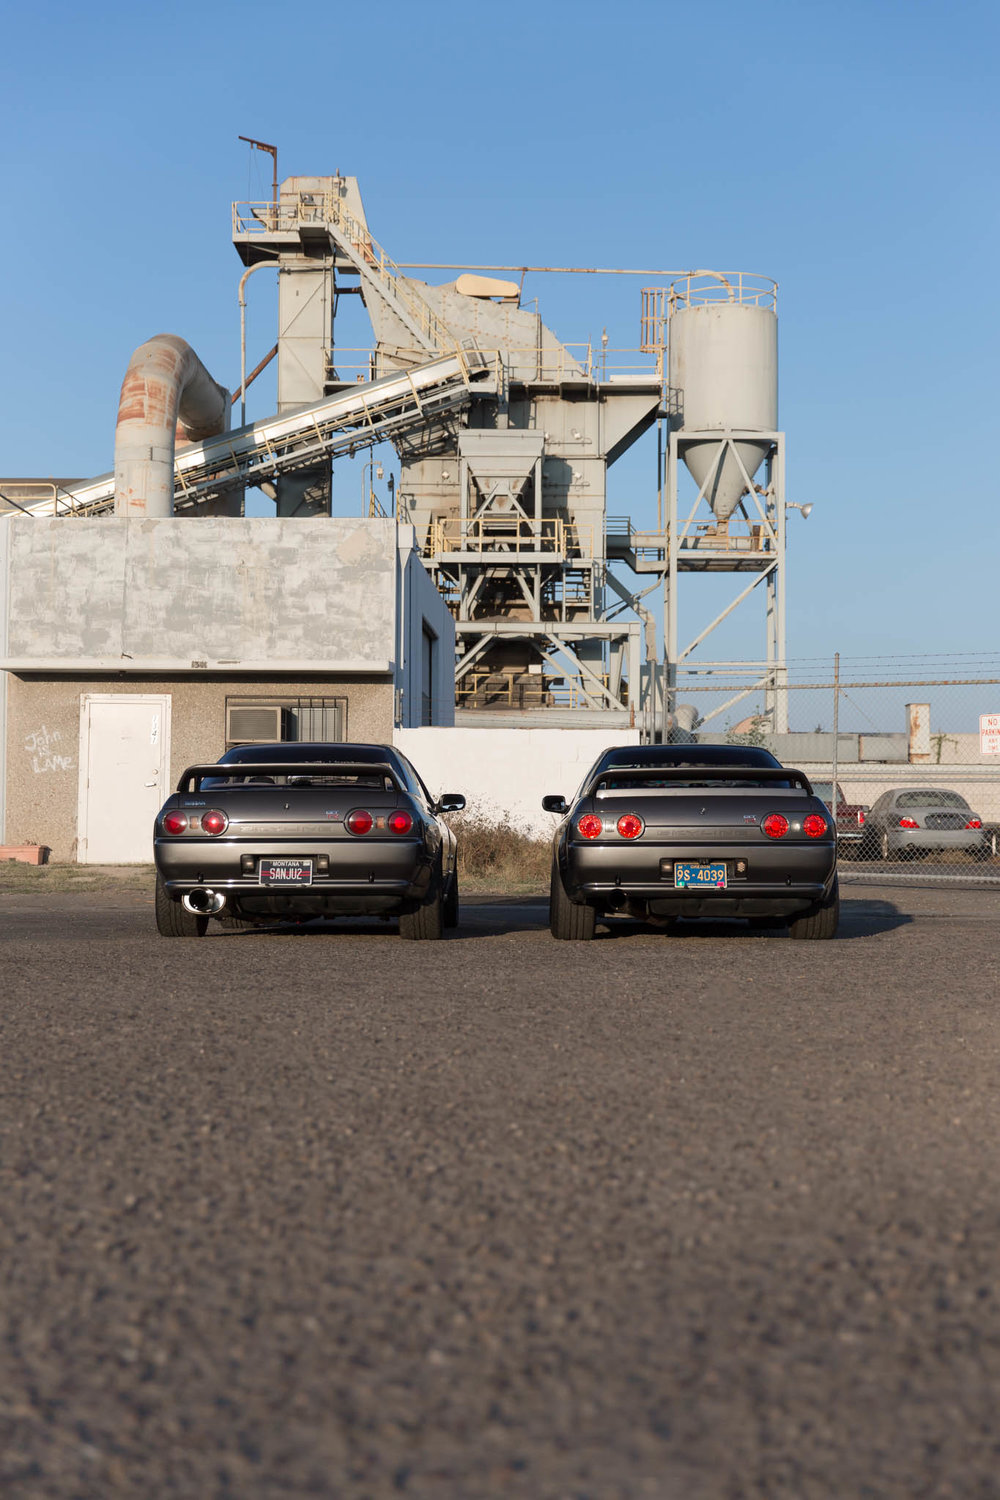 Stay_Driven_Skyline_Syndicate_Favs-11.jpg